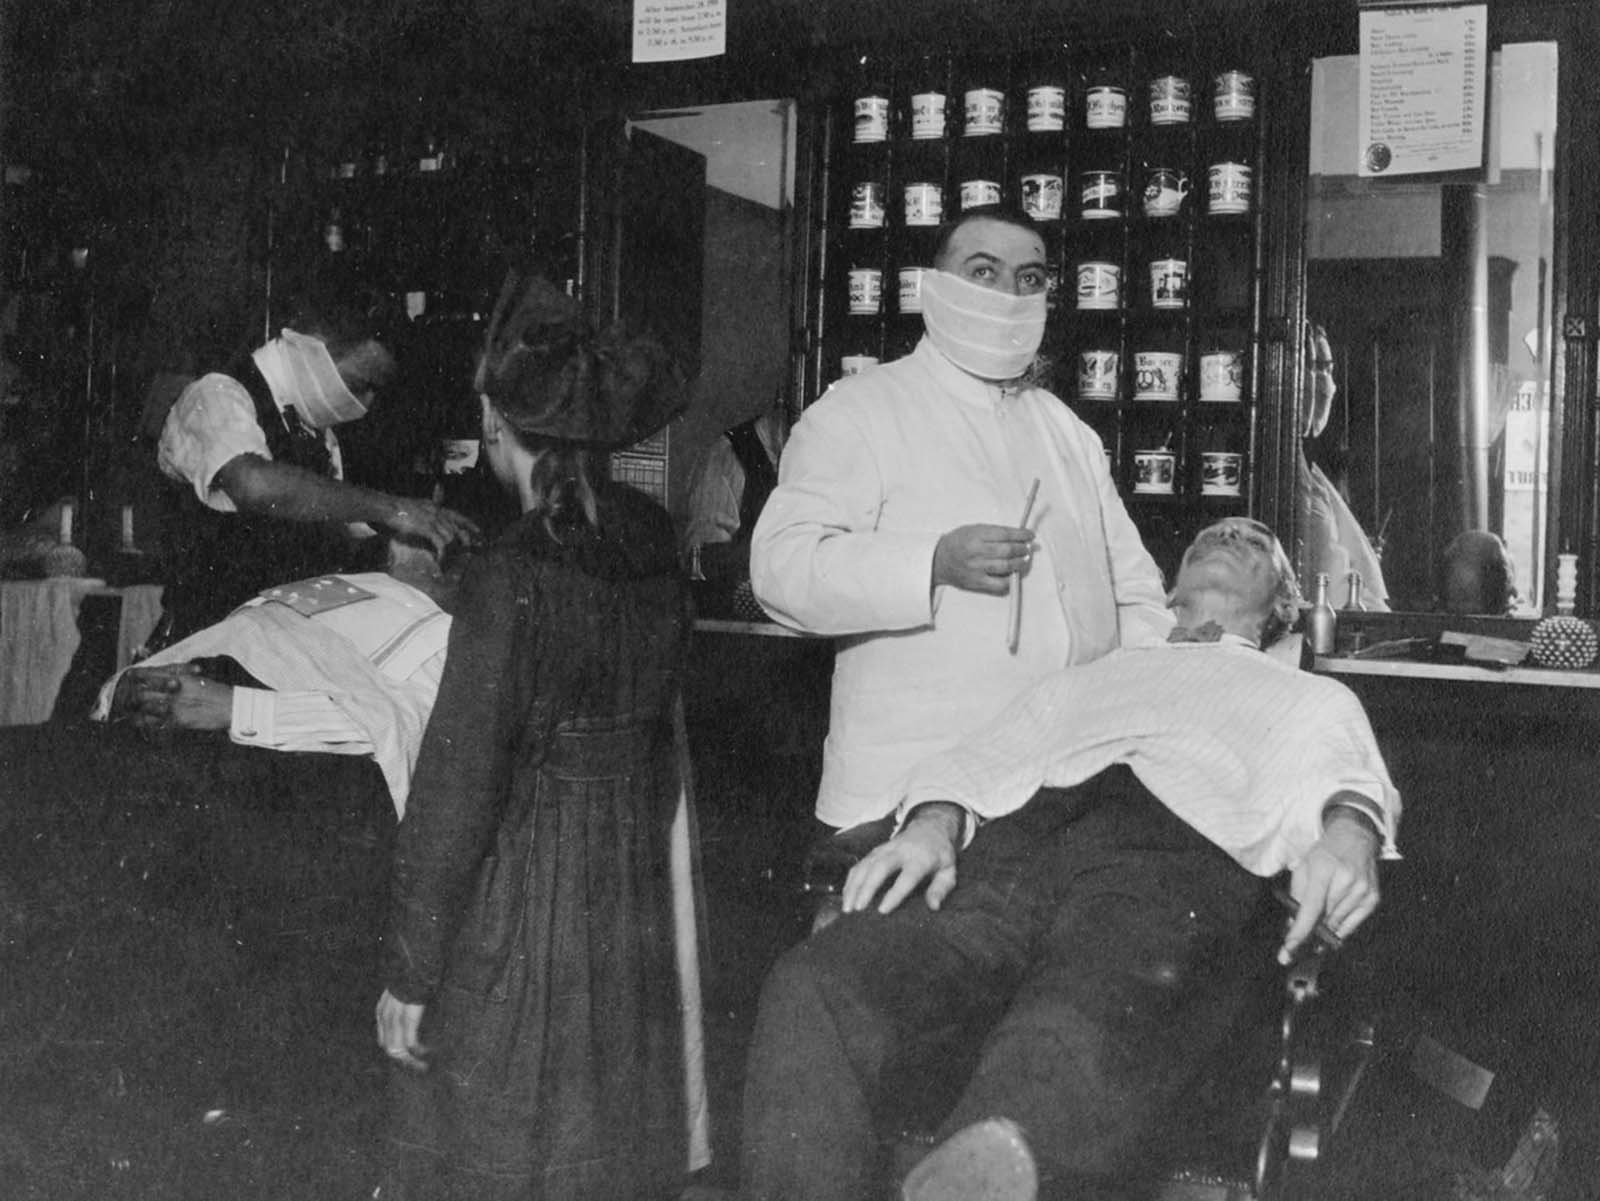 To prevent as much as possible the spread of influenza, Cincinnati barbers wore masks. Barbers all over the country took this precaution.